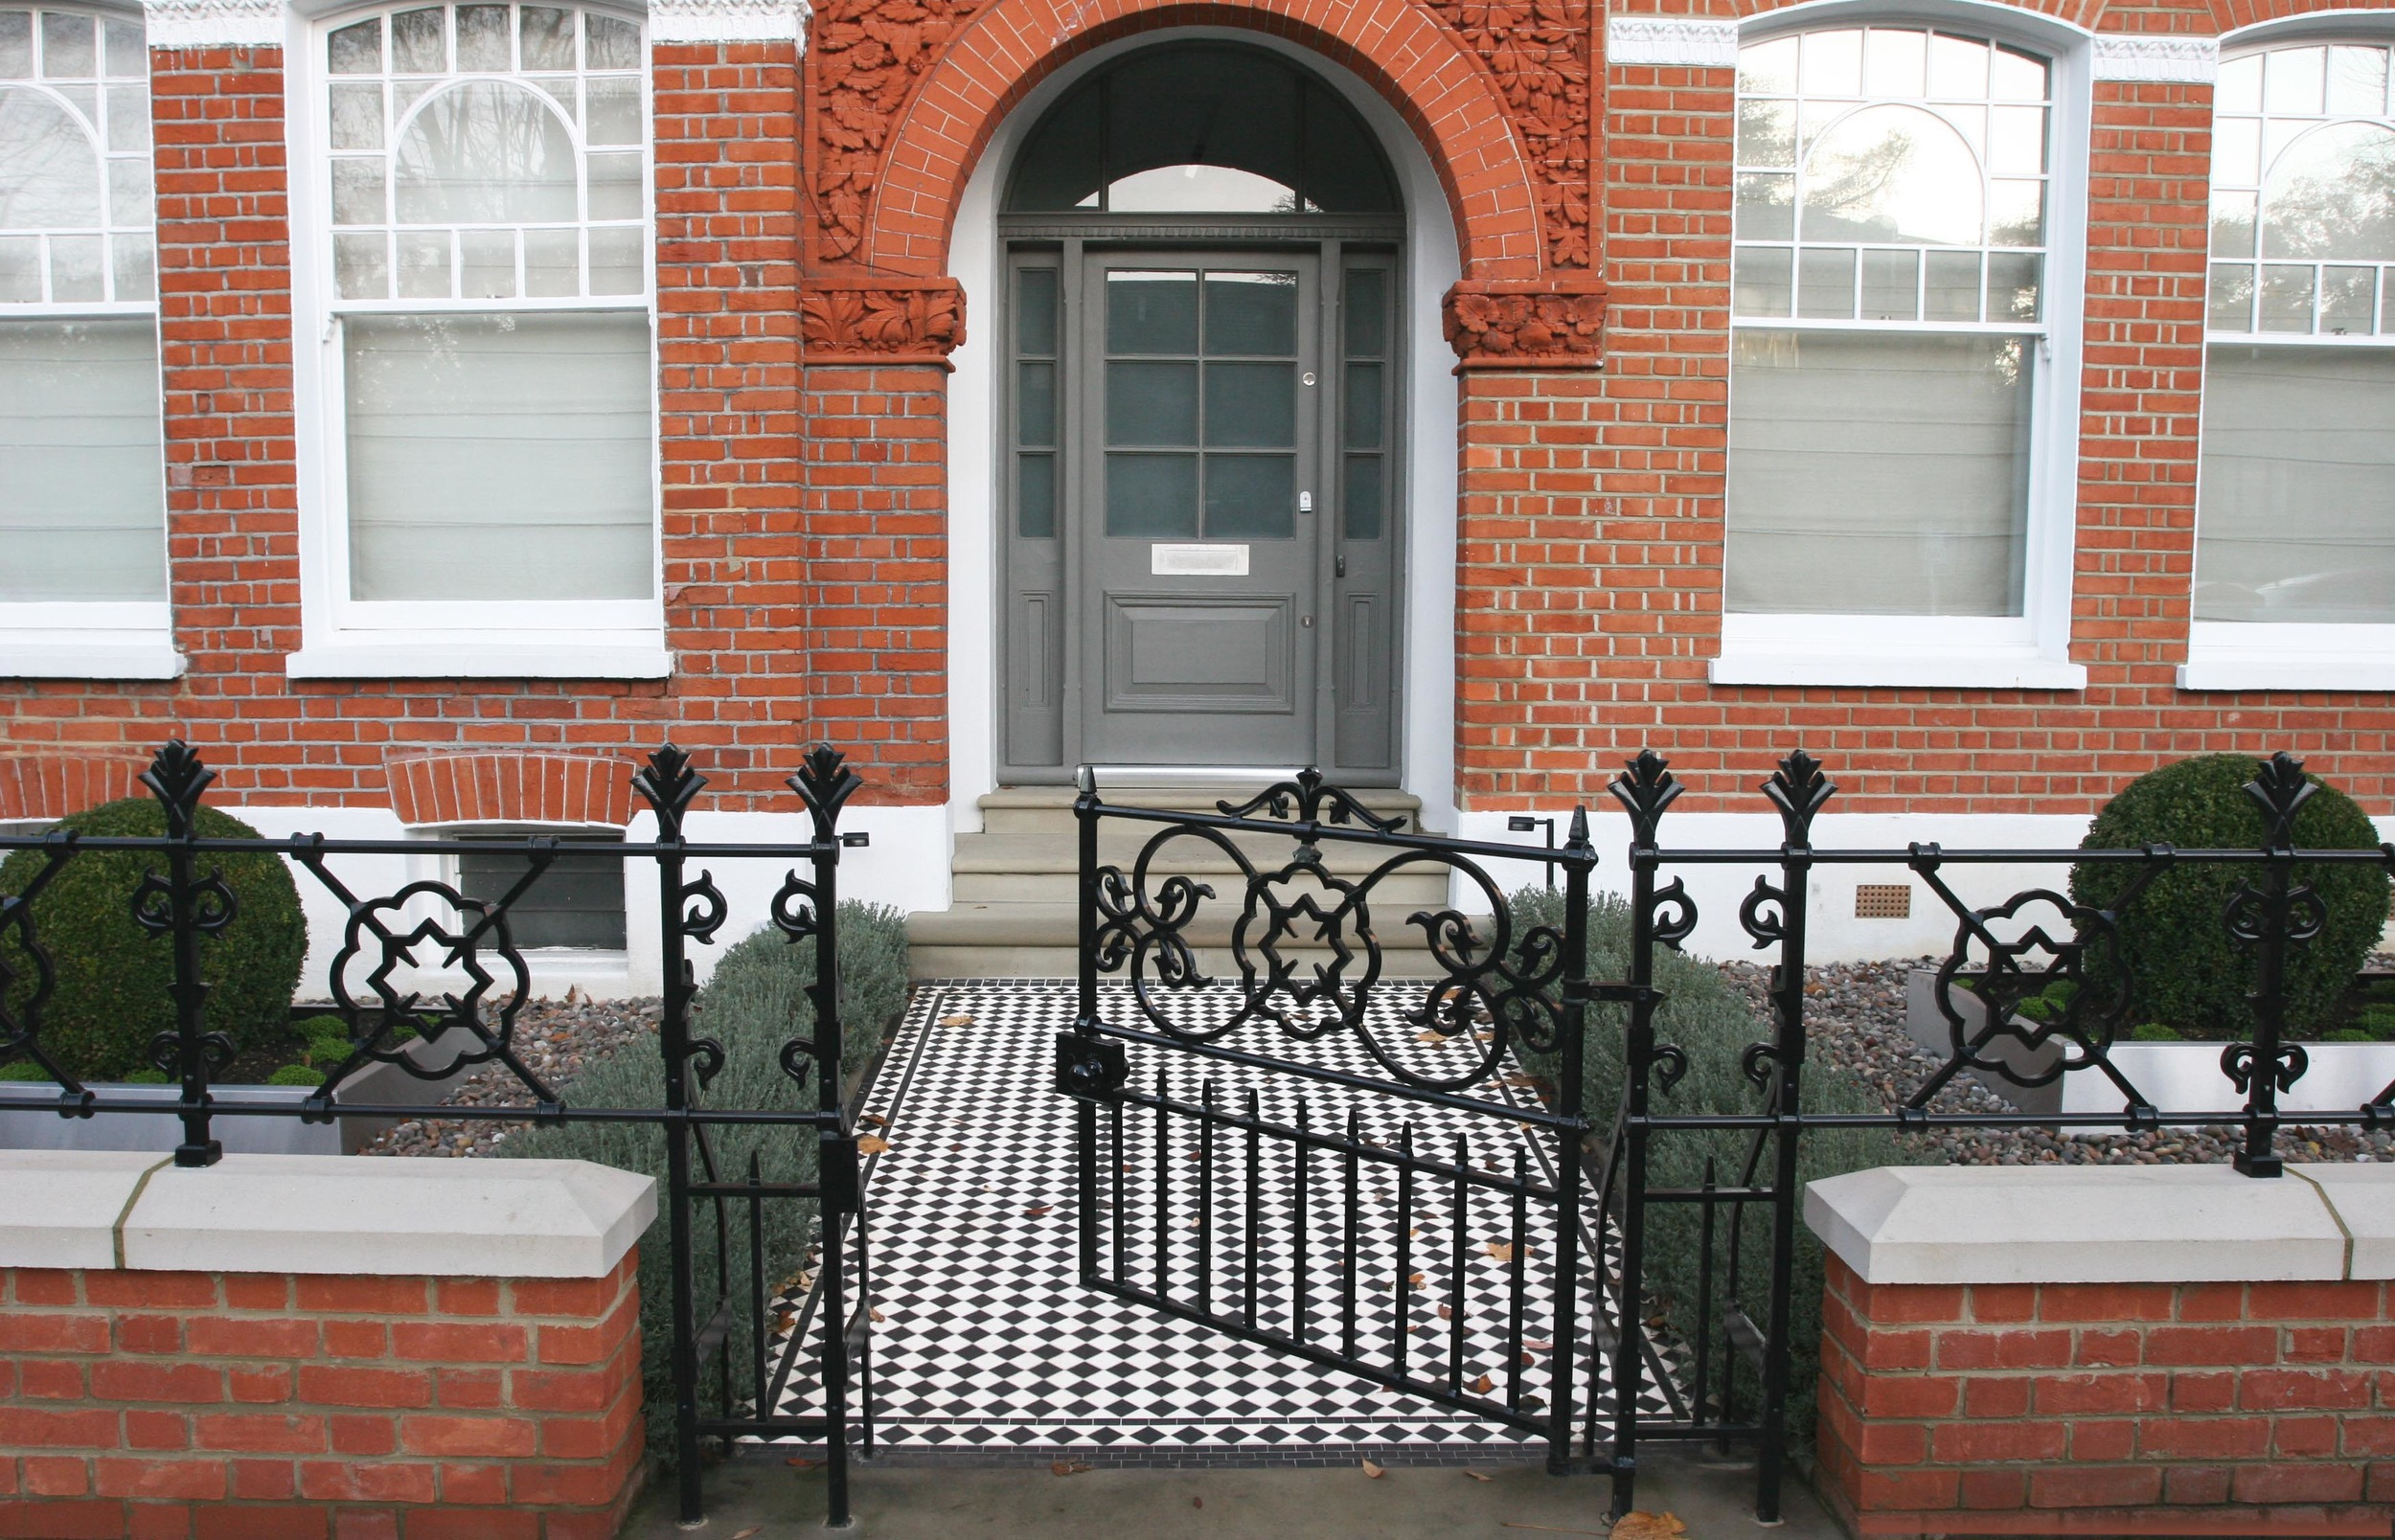 Black and white victorian tiled path with black diamond border